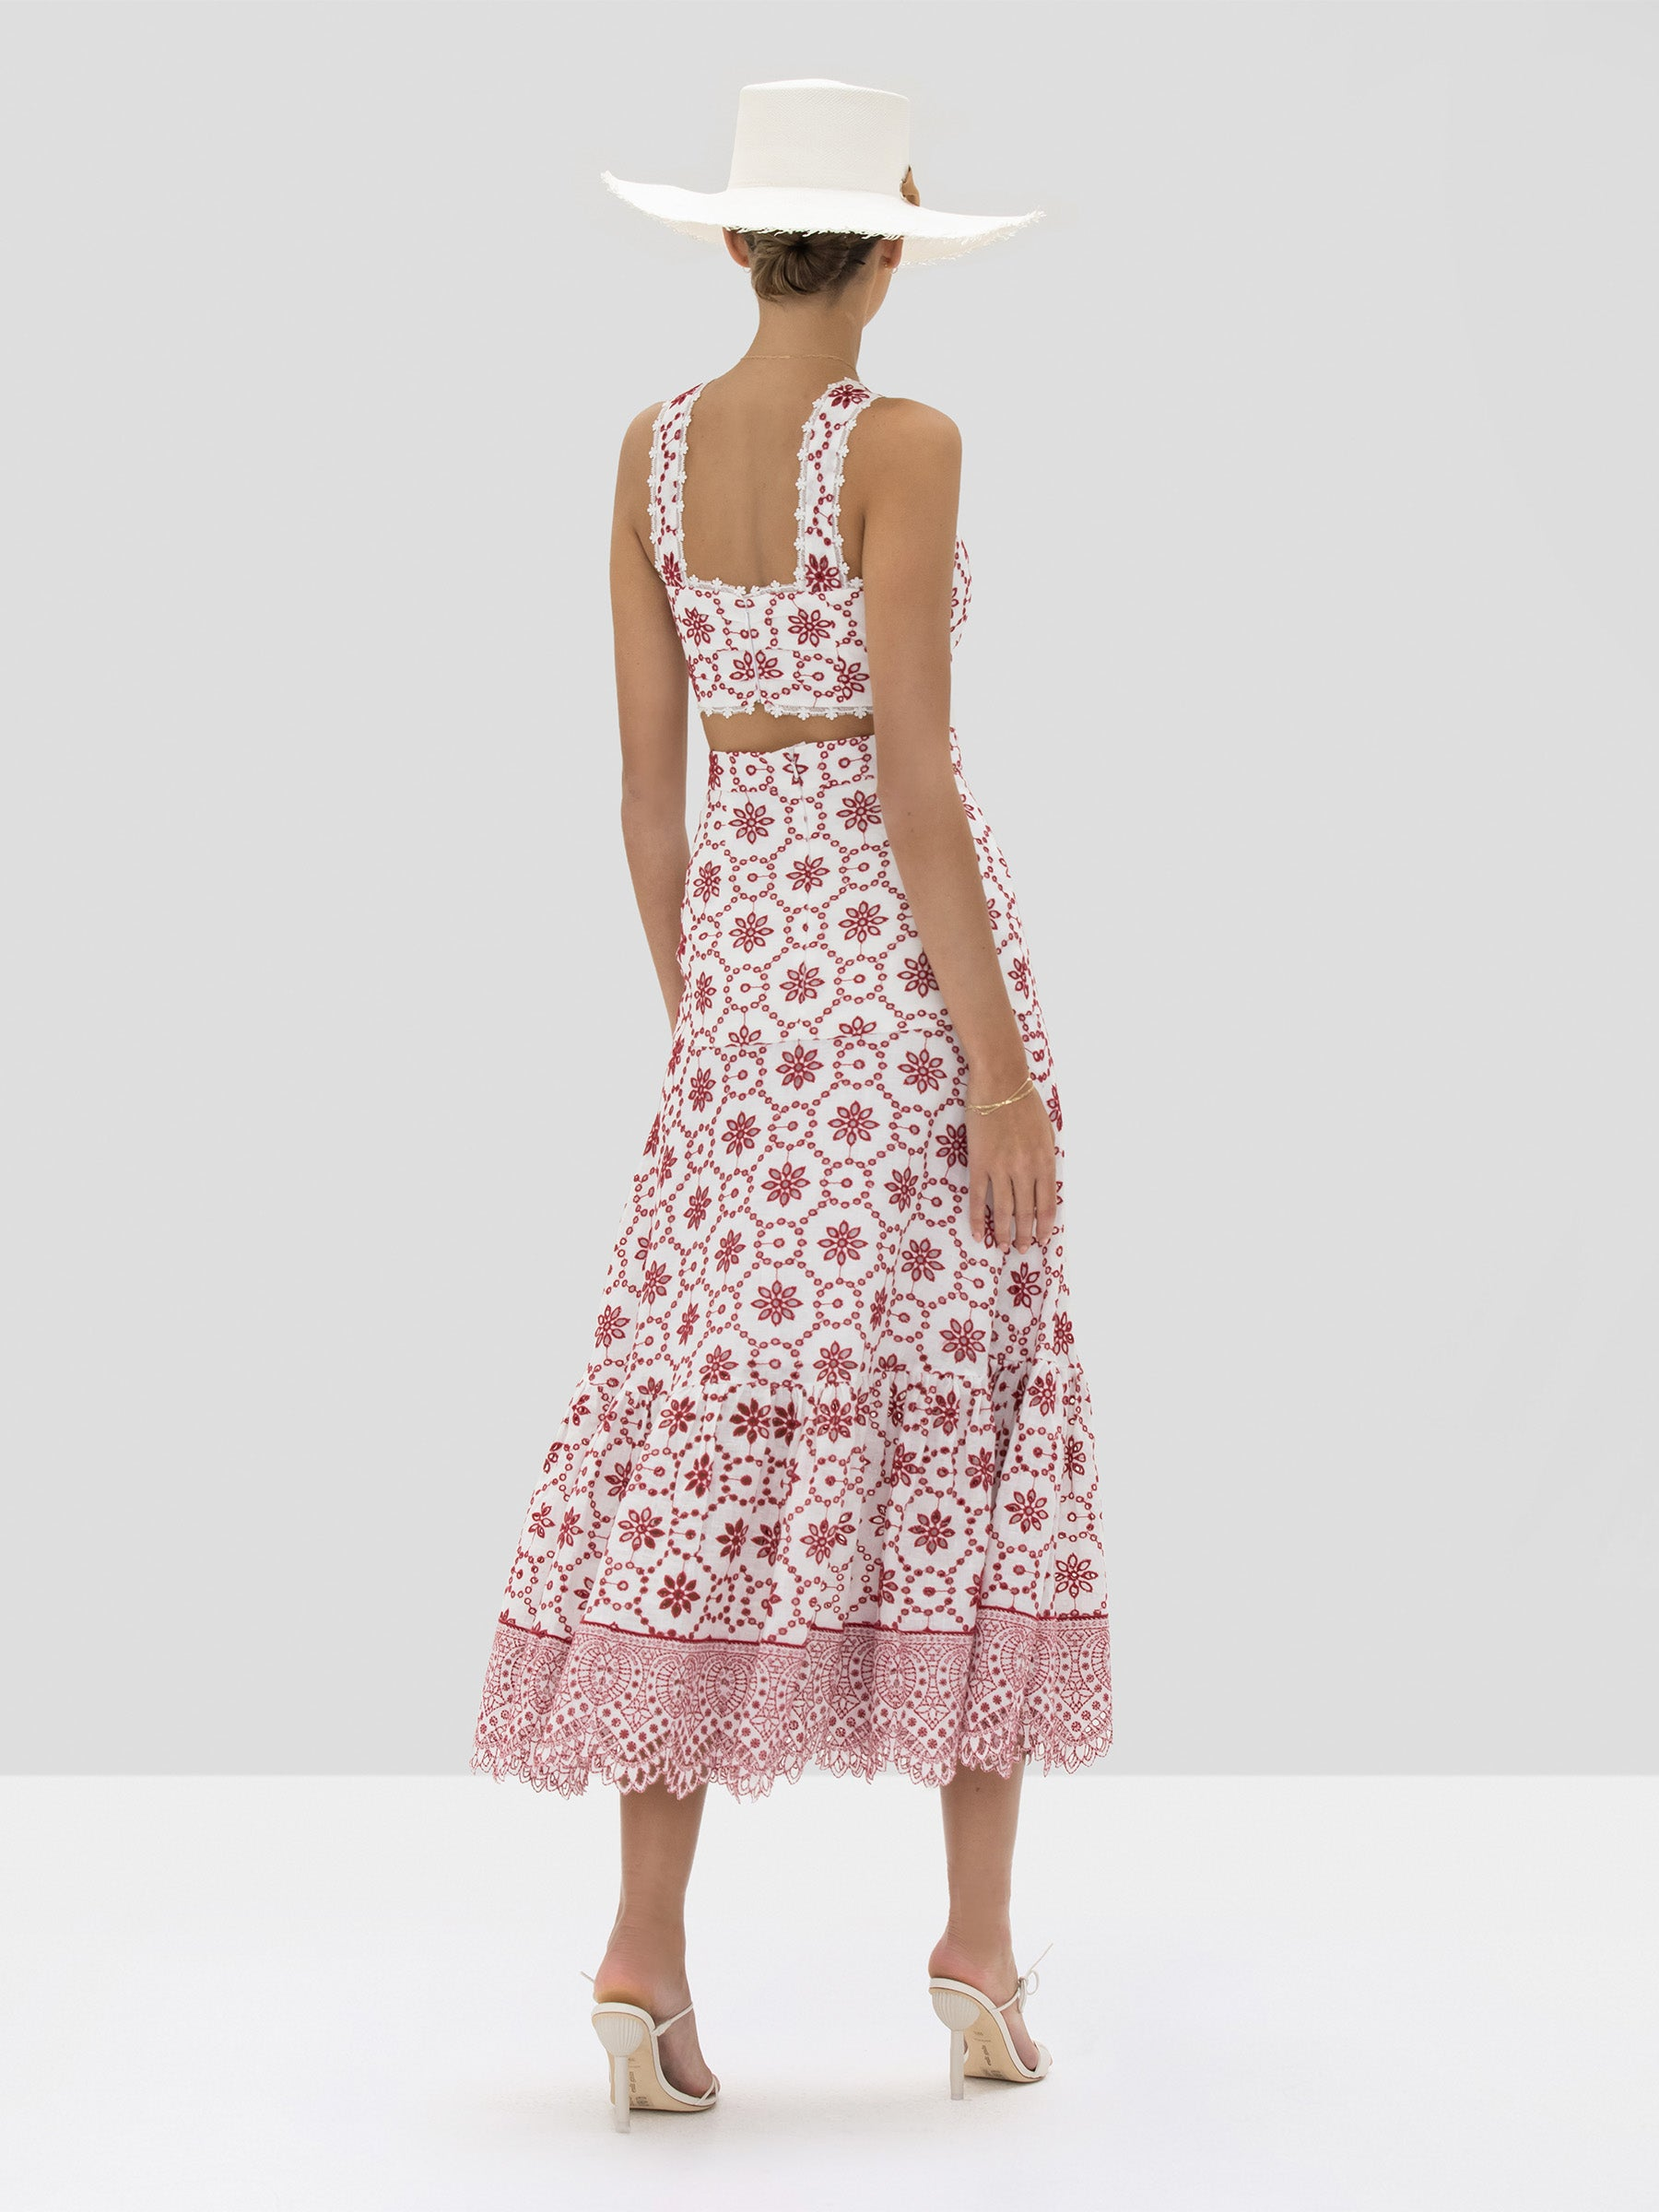 Alexis Barta Crop Top and Paulina Skirt in Berry Eyelet Embroidery from Spring Summer 2020 - Rear View